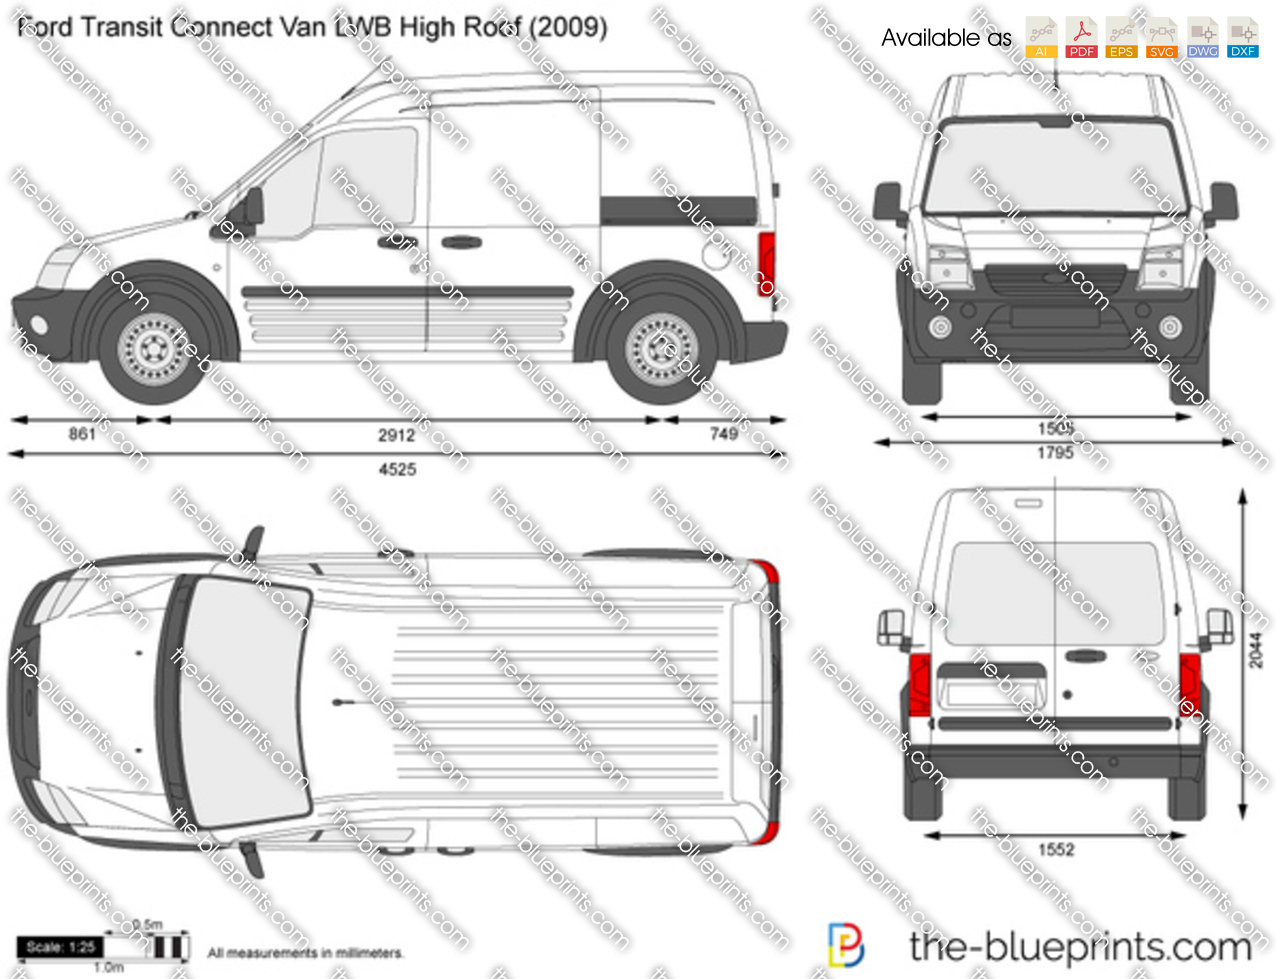 Ford Transit Connect Van LWB High Roof 2007